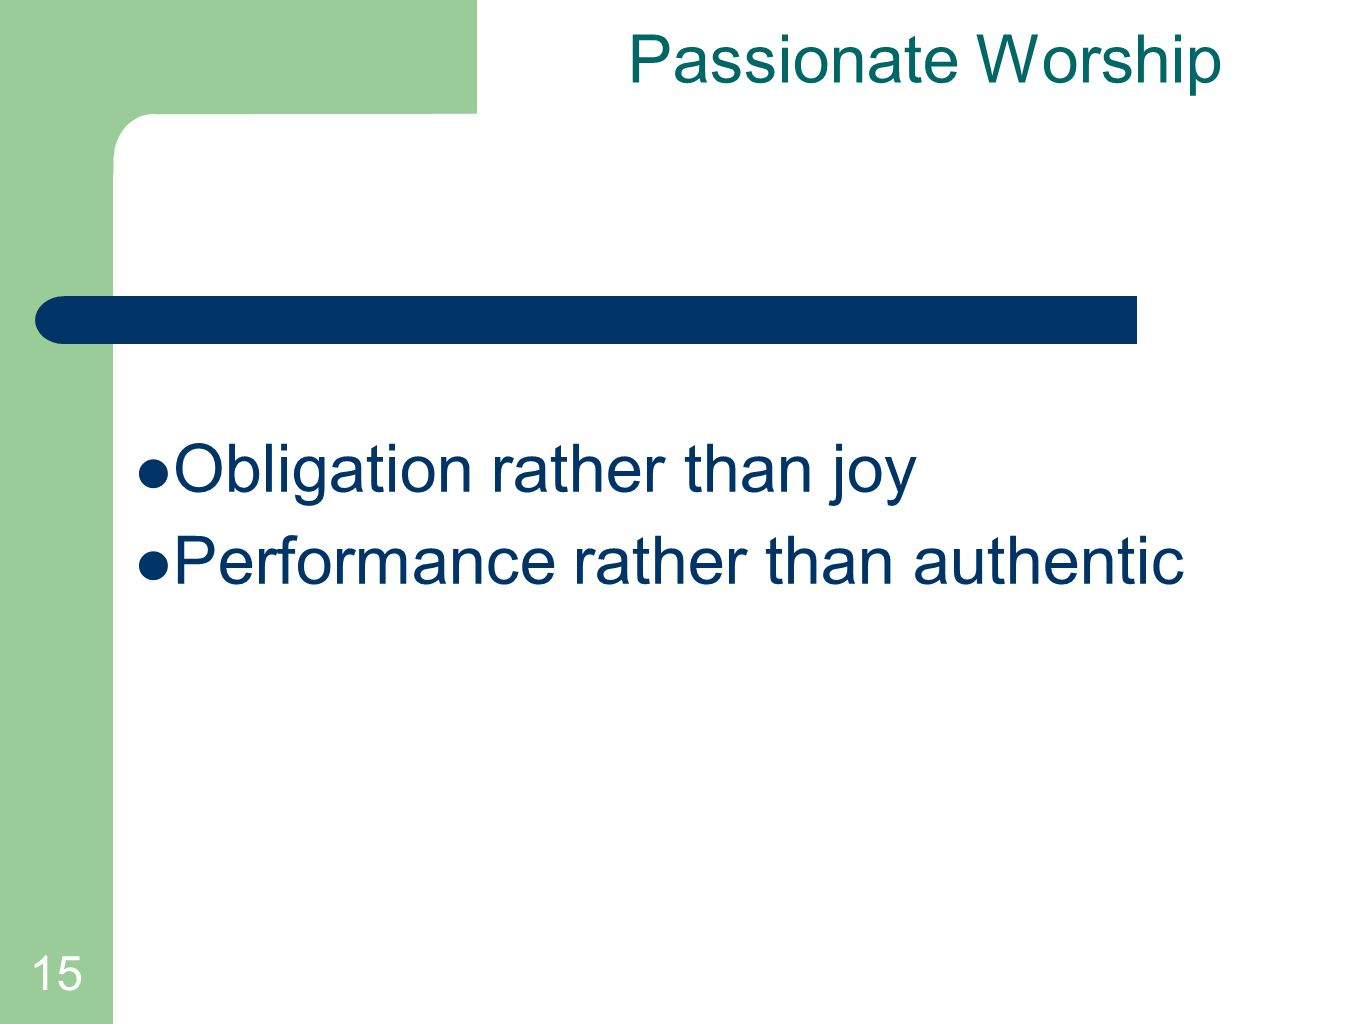 15 Passionate Worship Obligation rather than joy Performance rather than authentic